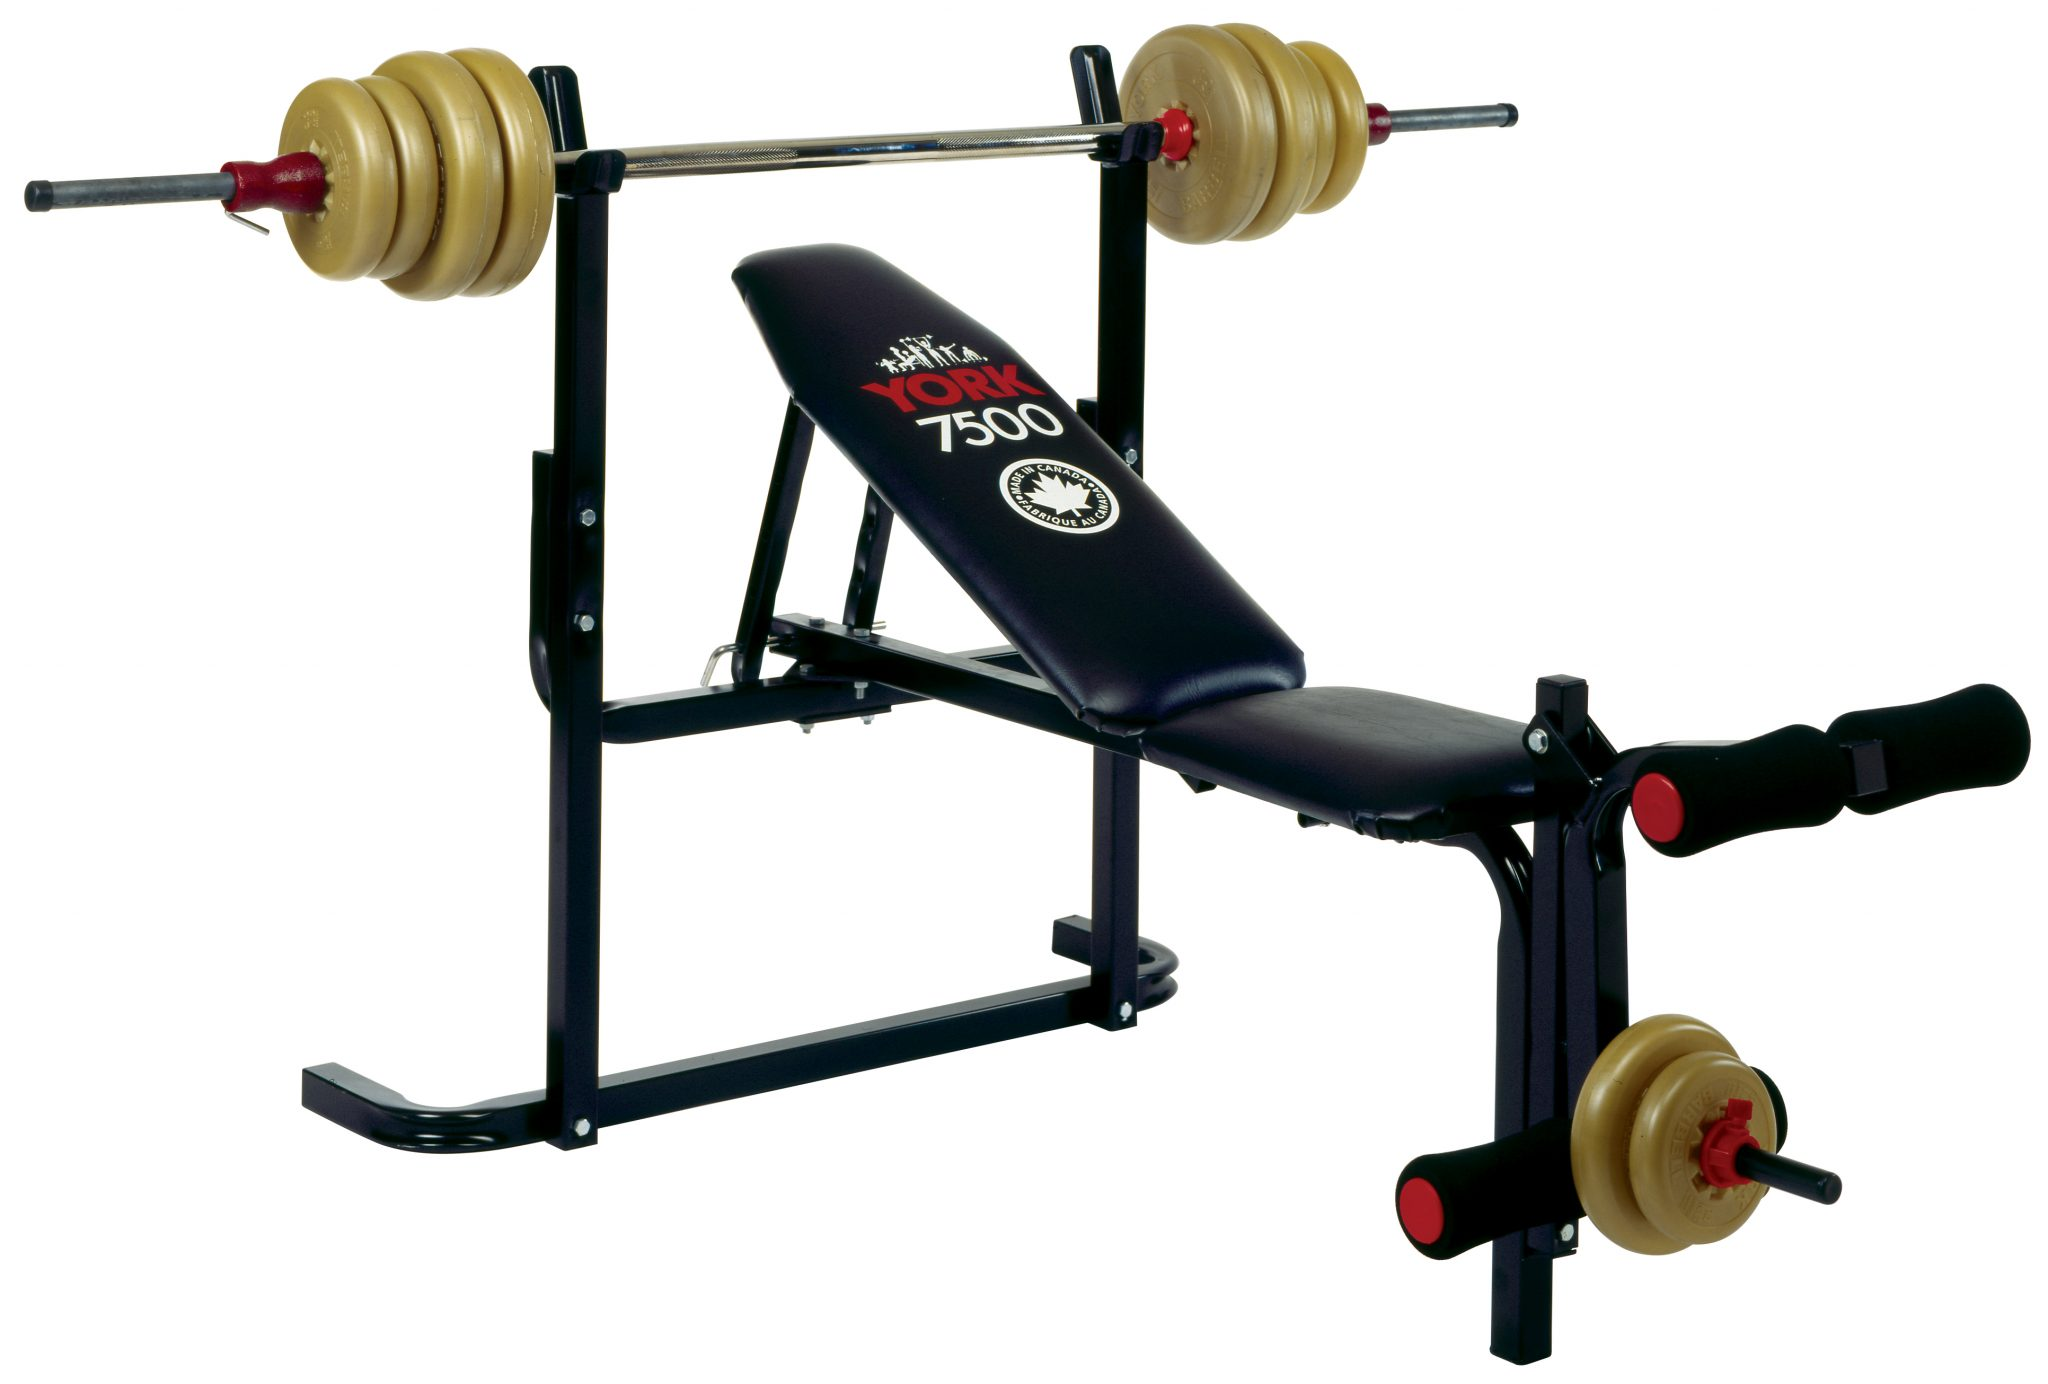 Champs Weight Bench | Craigslist Weight Bench | Weight Benches on Sale